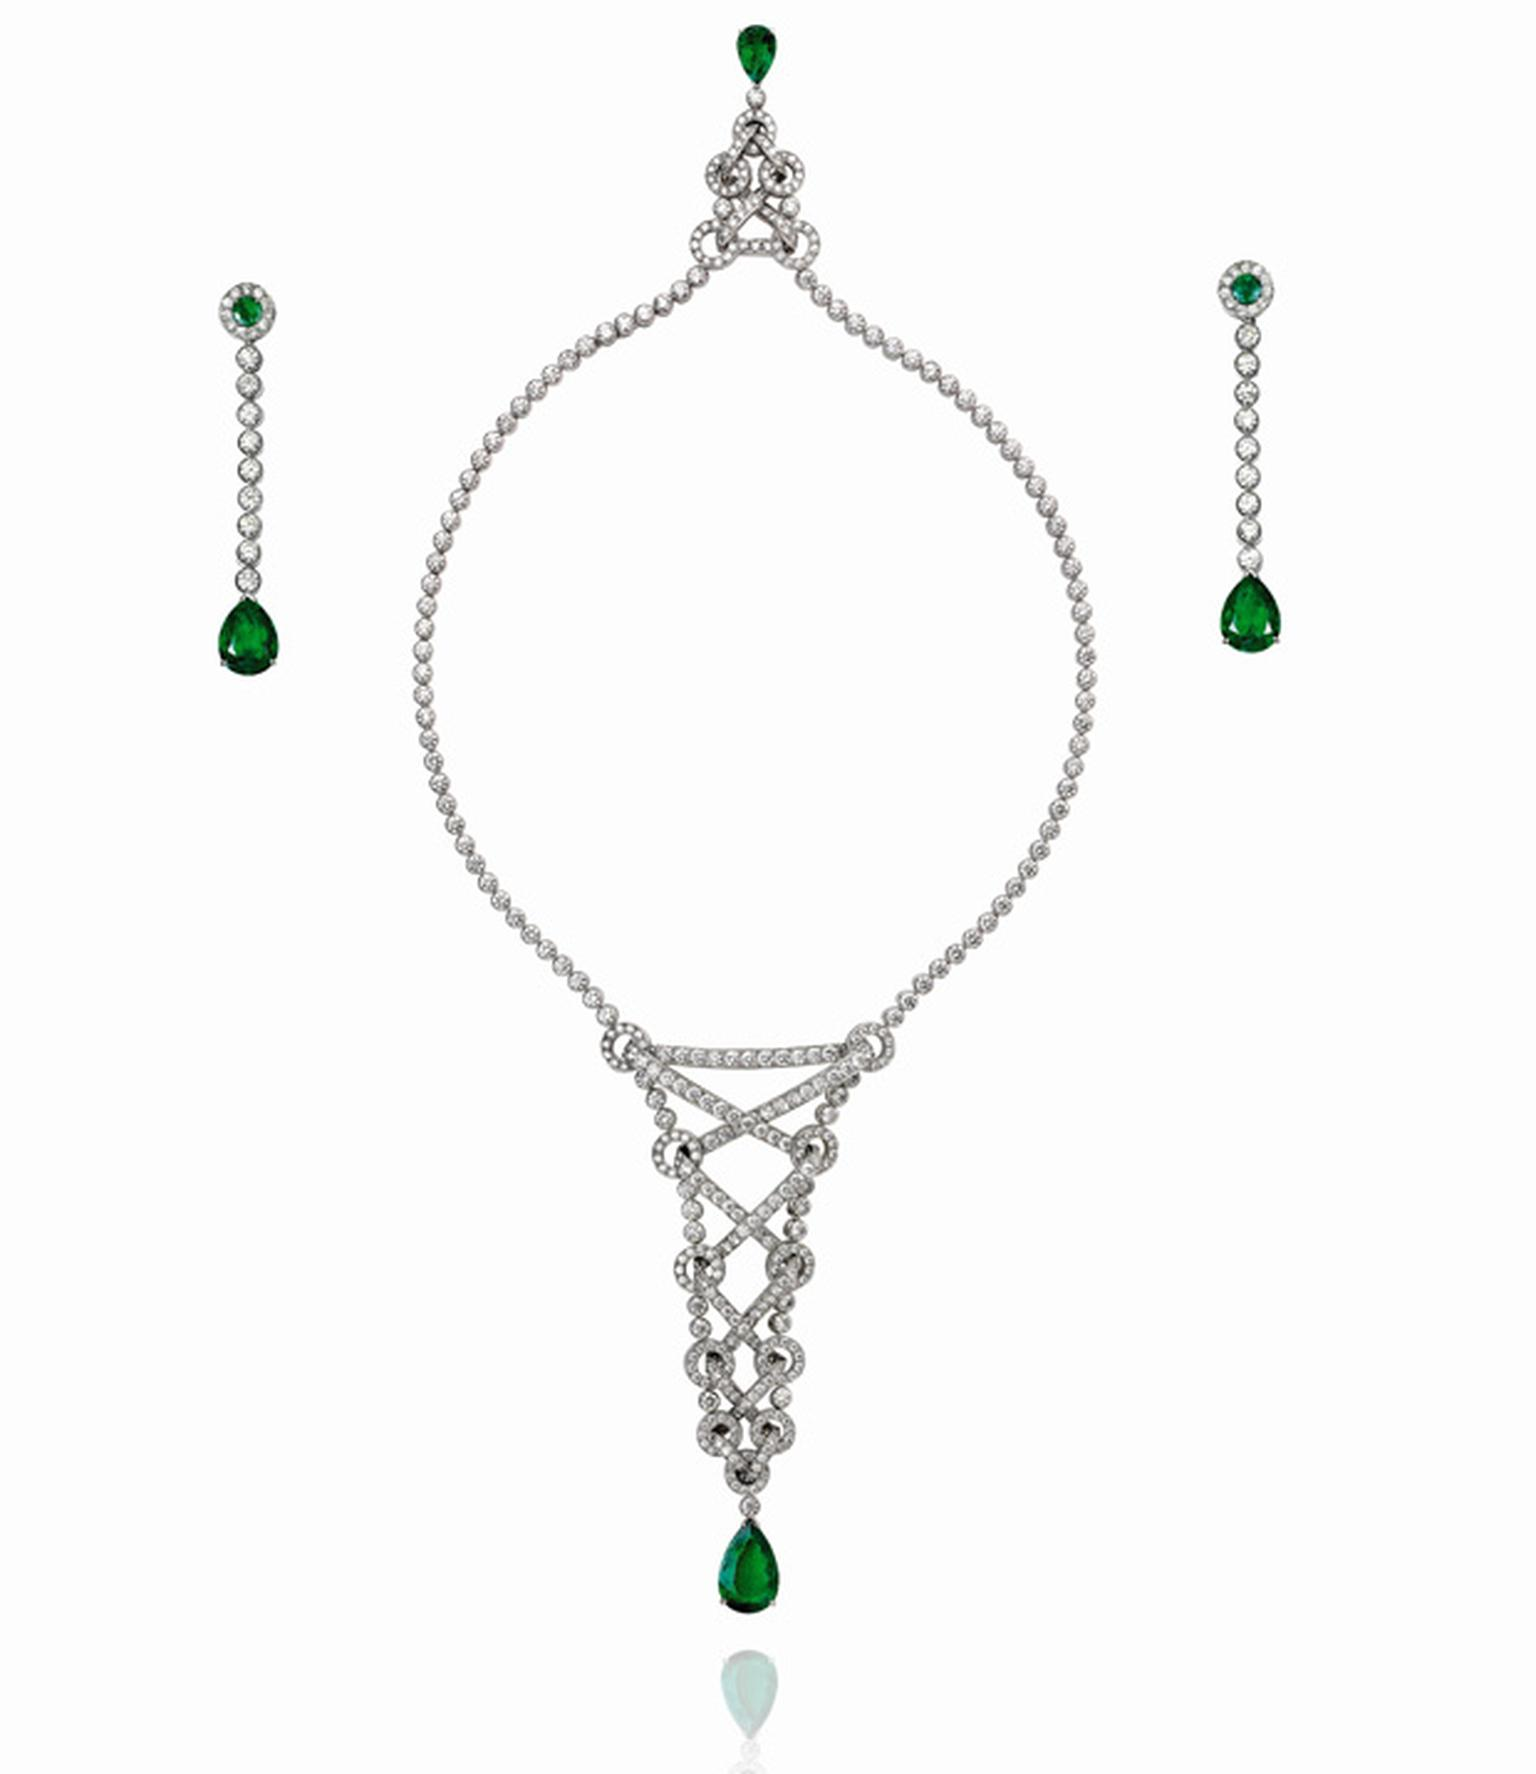 Piaget white gold necklace set with diamond and two emeralds